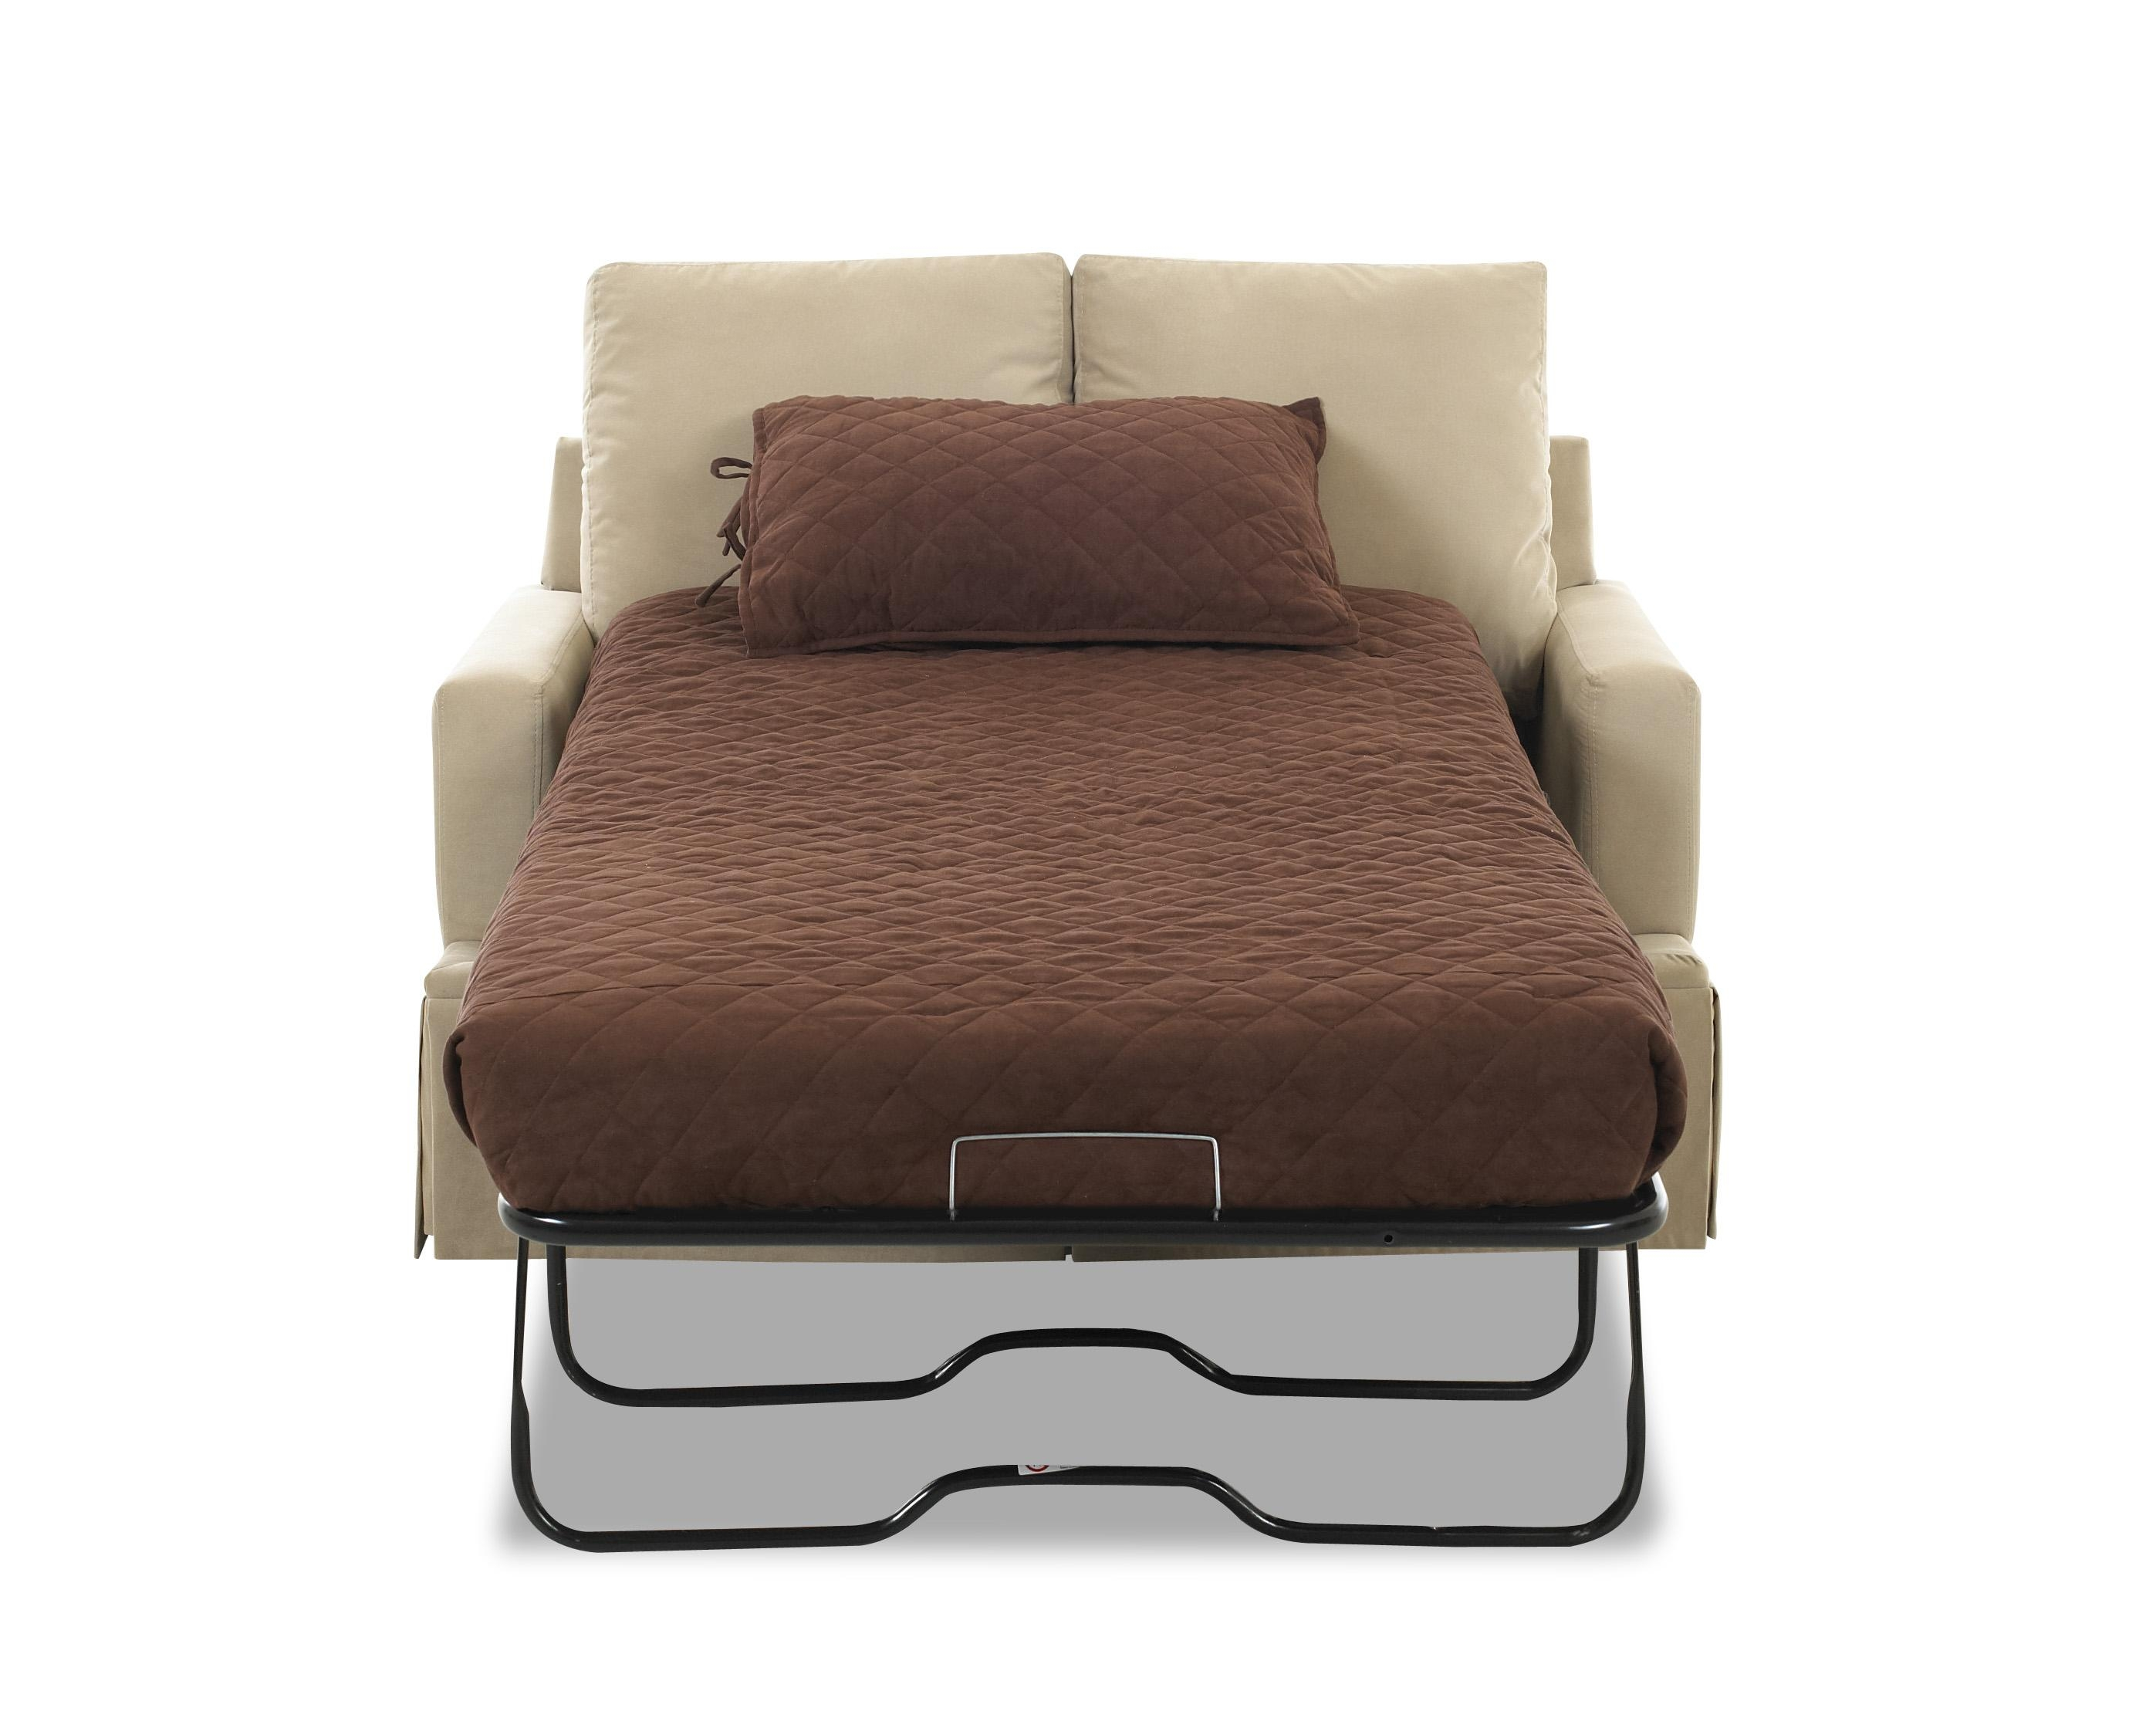 Chair Bed Twin Sleeper 20 Best Collection Of Sheets For Sofa Beds Mattress Sofa